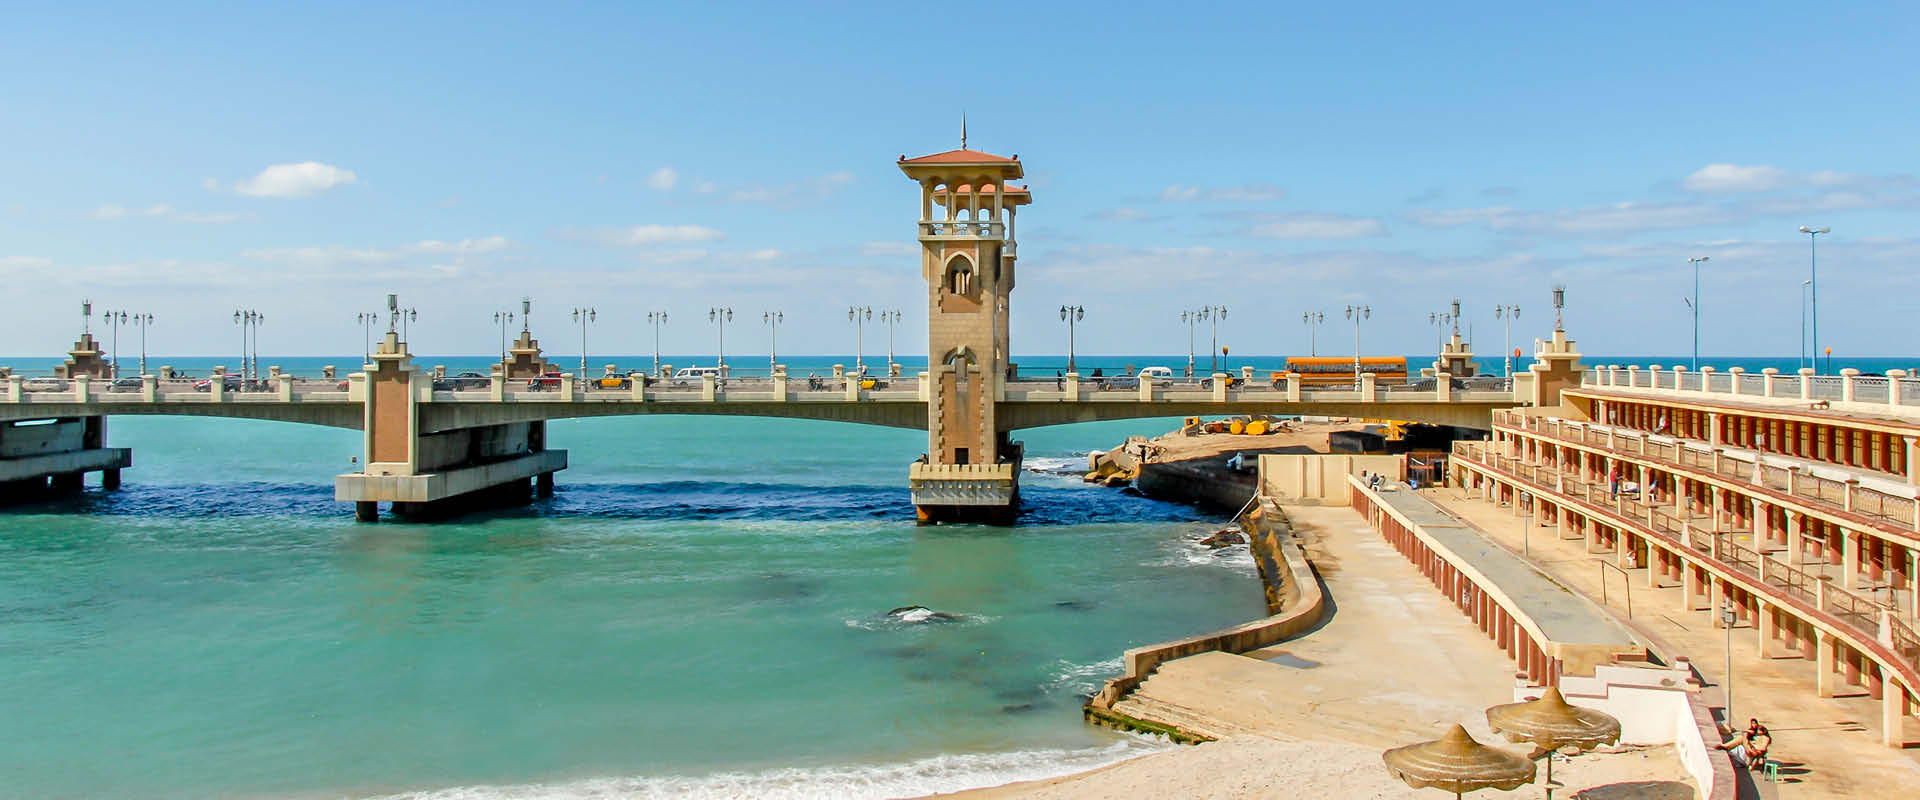 Beach area and bathing box grandstand and iconic Stanley bridge, Alexandria